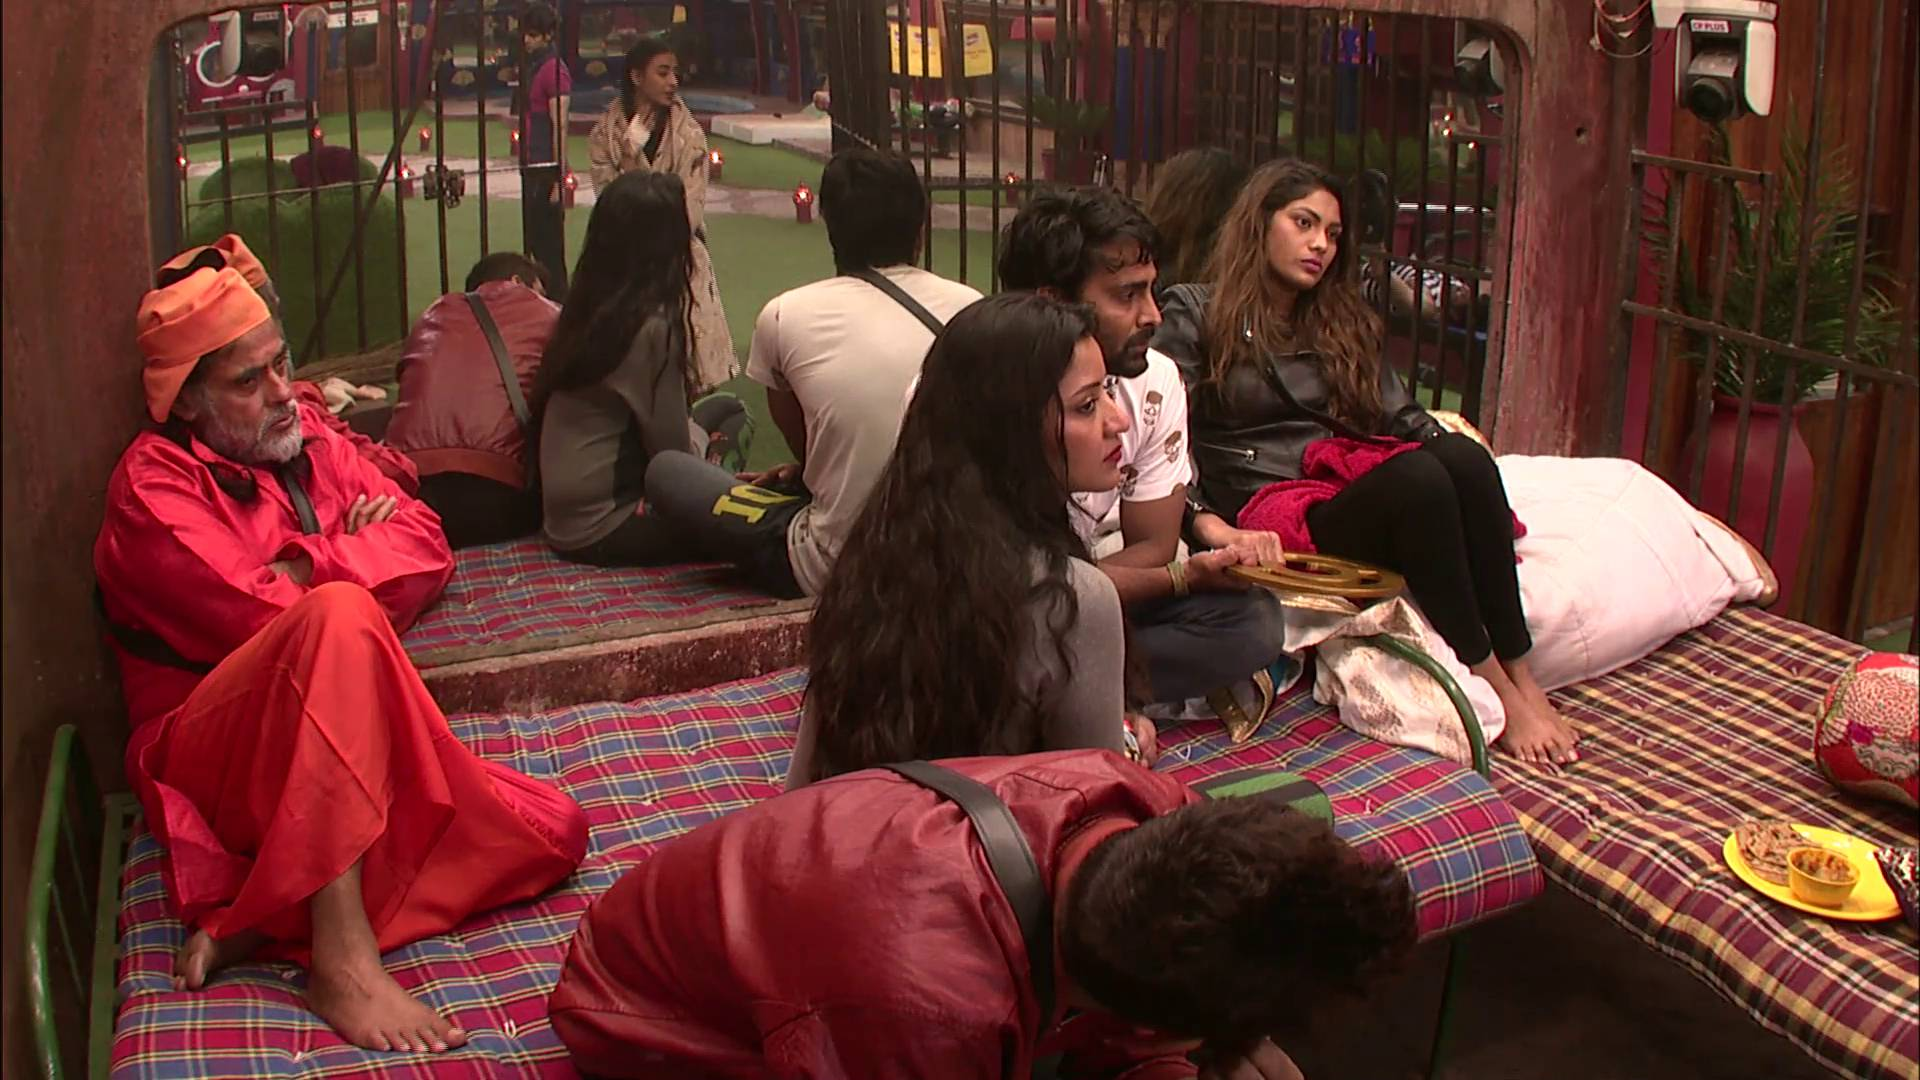 Andekha Action: Bani tells Lopamudra and Manveer not to hurt each other!